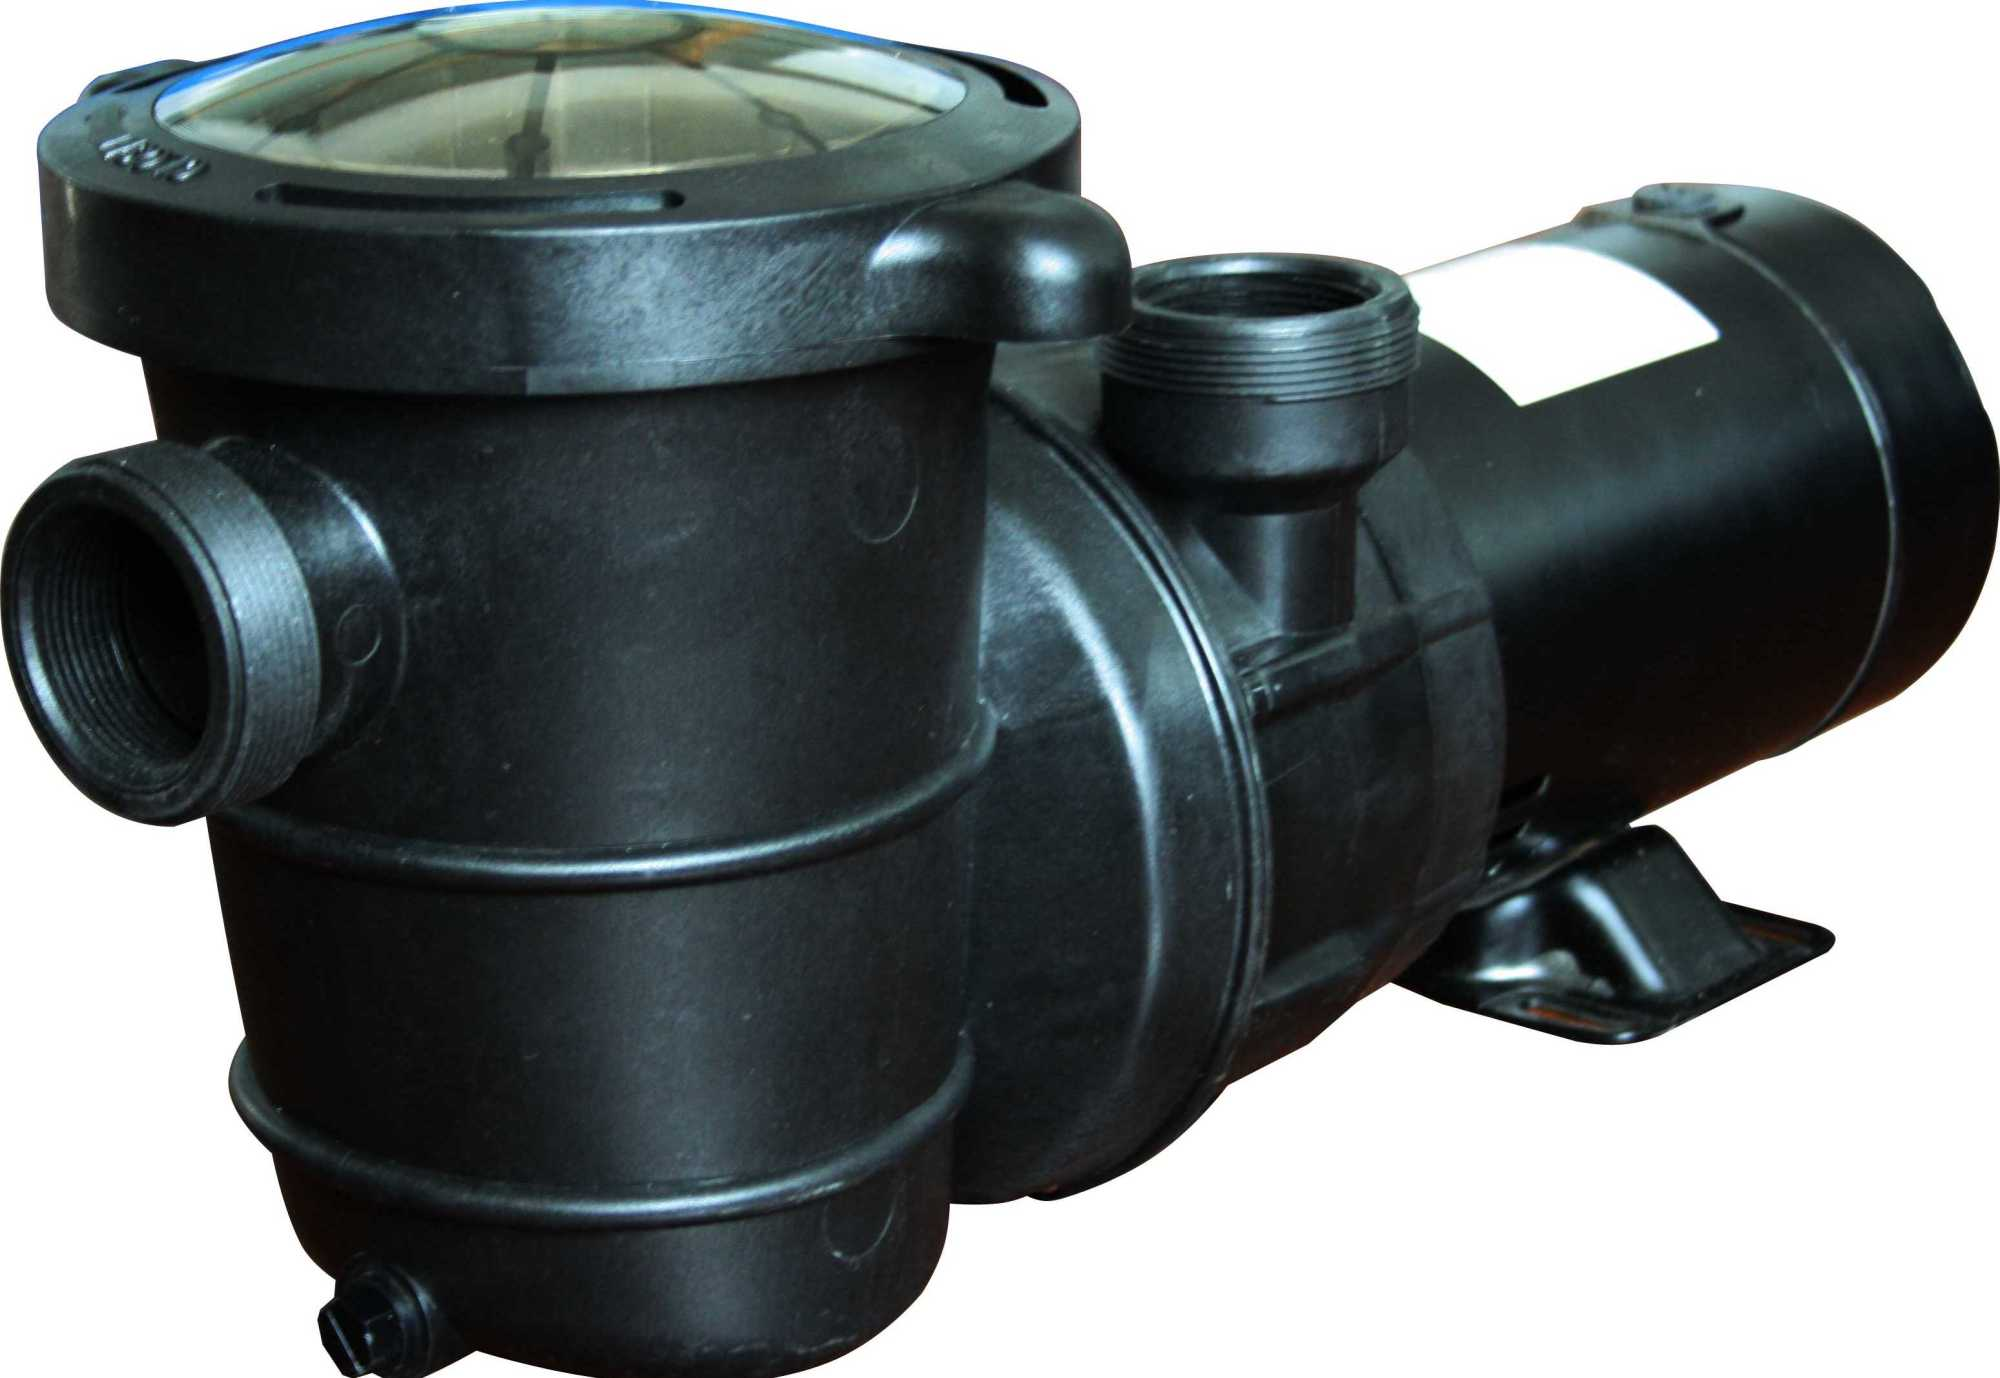 hight resolution of high performance swimming pool pump above ground 1 5 hp 115v w 6 ft